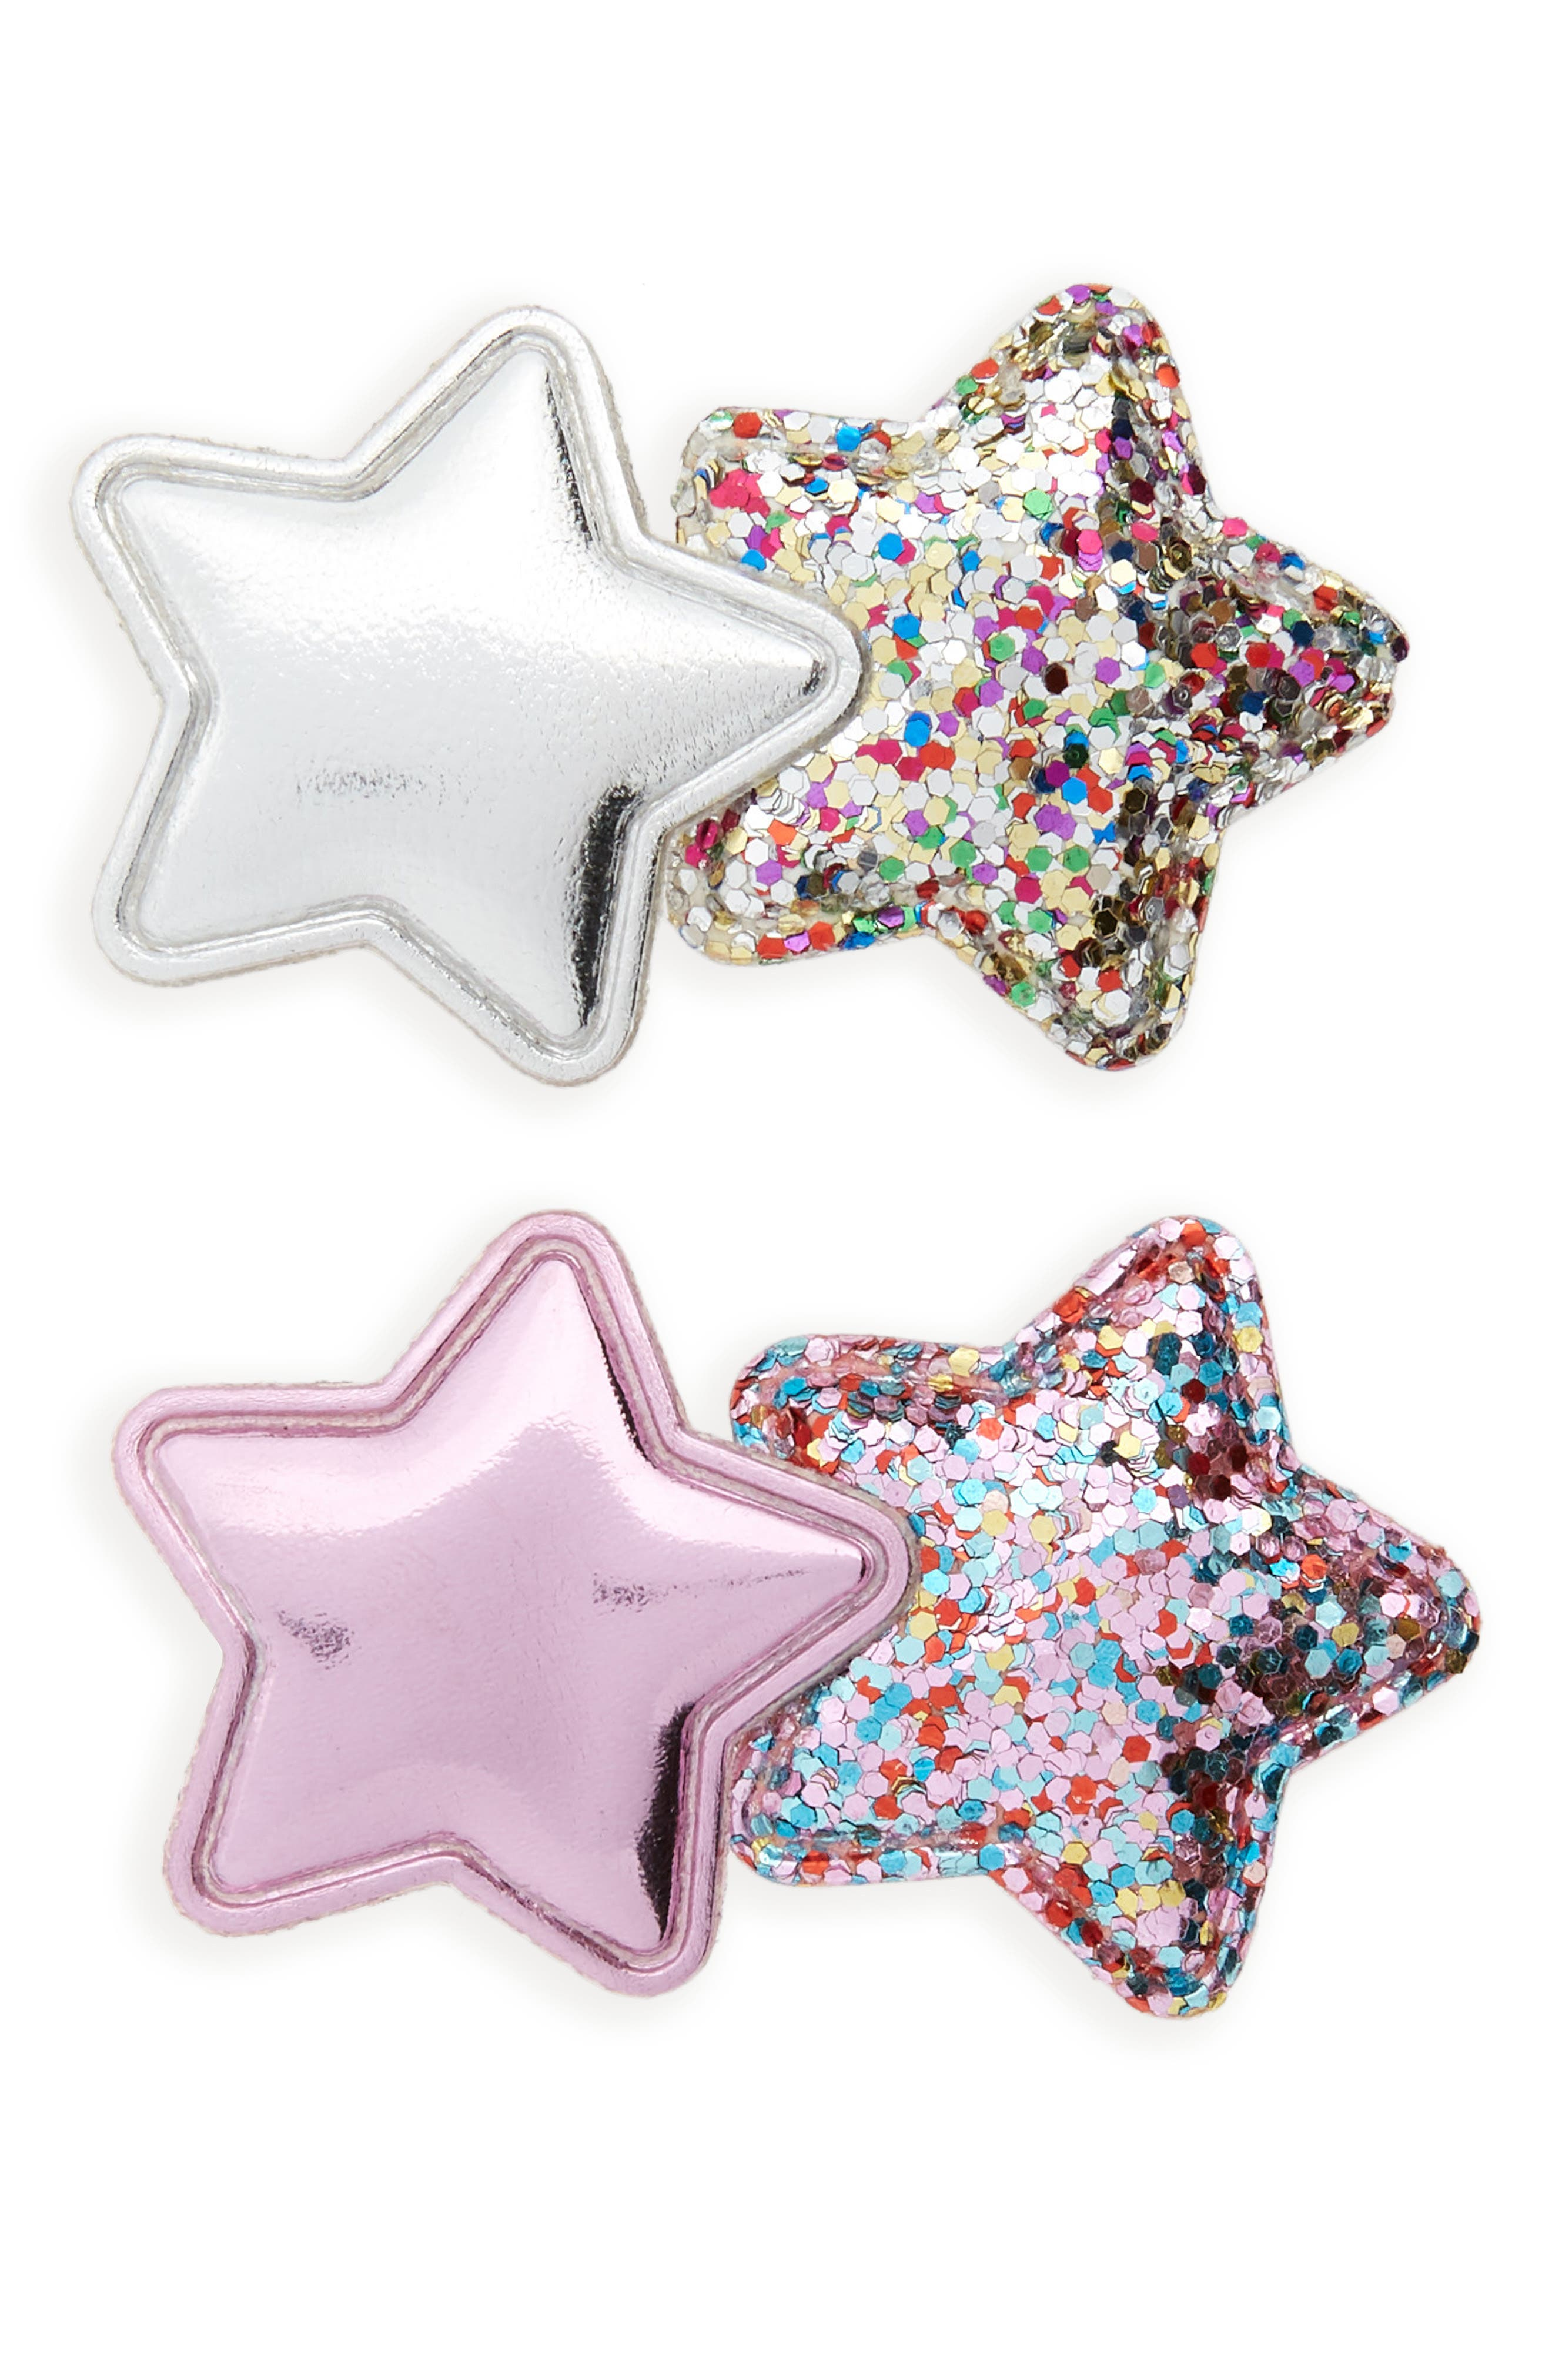 2-Pack Glitter Star Hair Clips,                             Main thumbnail 1, color,                             SILVER/ PINK